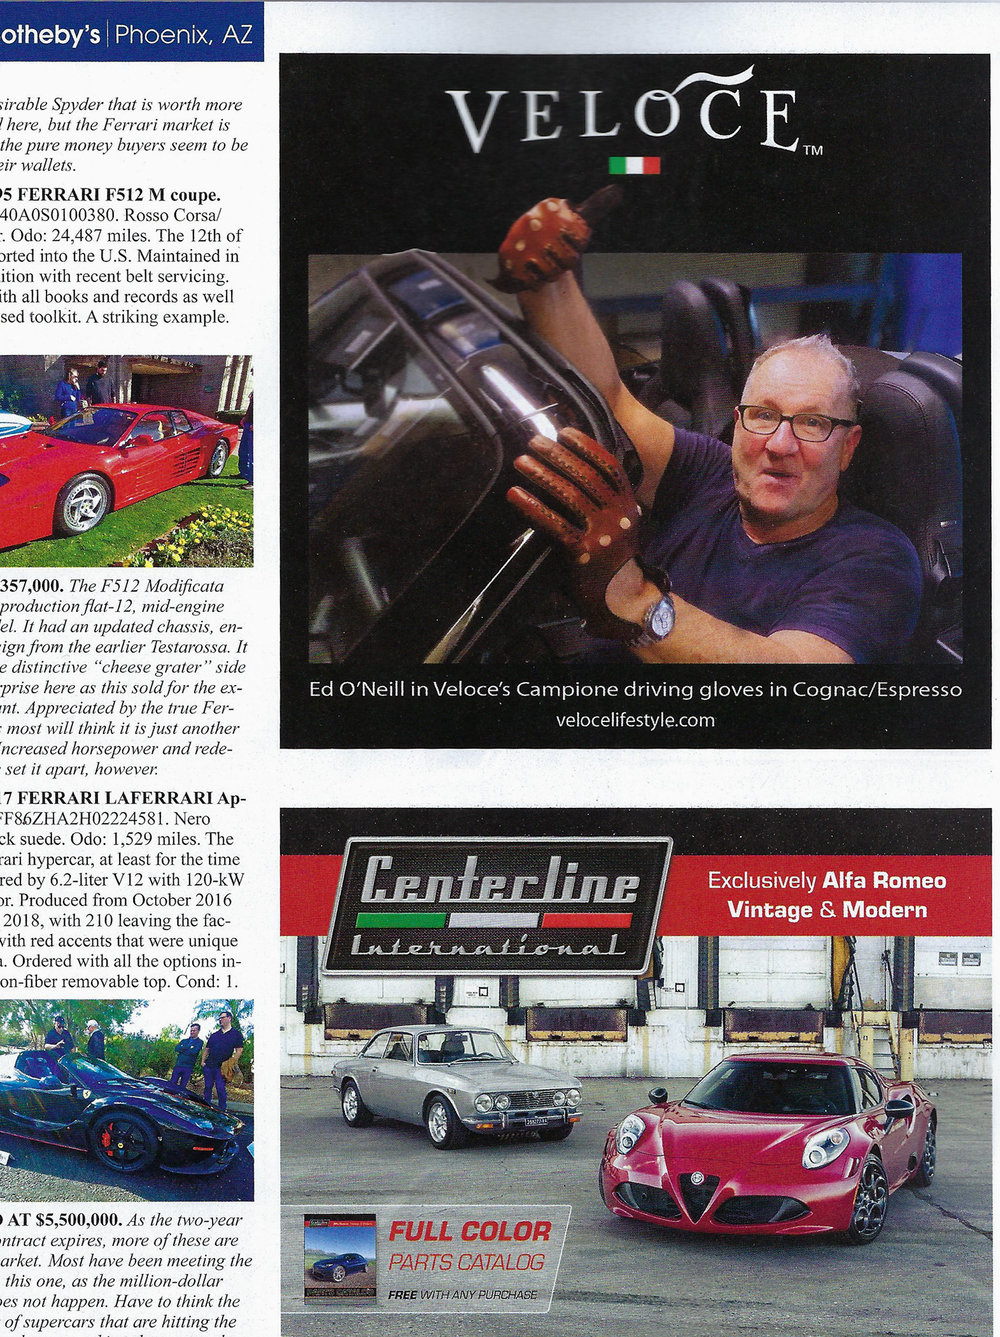 Ed O'Neill - Actor and sport car enthusiast: Ed O'Neill rocking his hand made Veloce Campione gloves in Cognac/Espresso lambskin as seen in this month's April Sports Car Market magazine! Available in all styles/colors in both Men's & Women's sizes. Get yours today